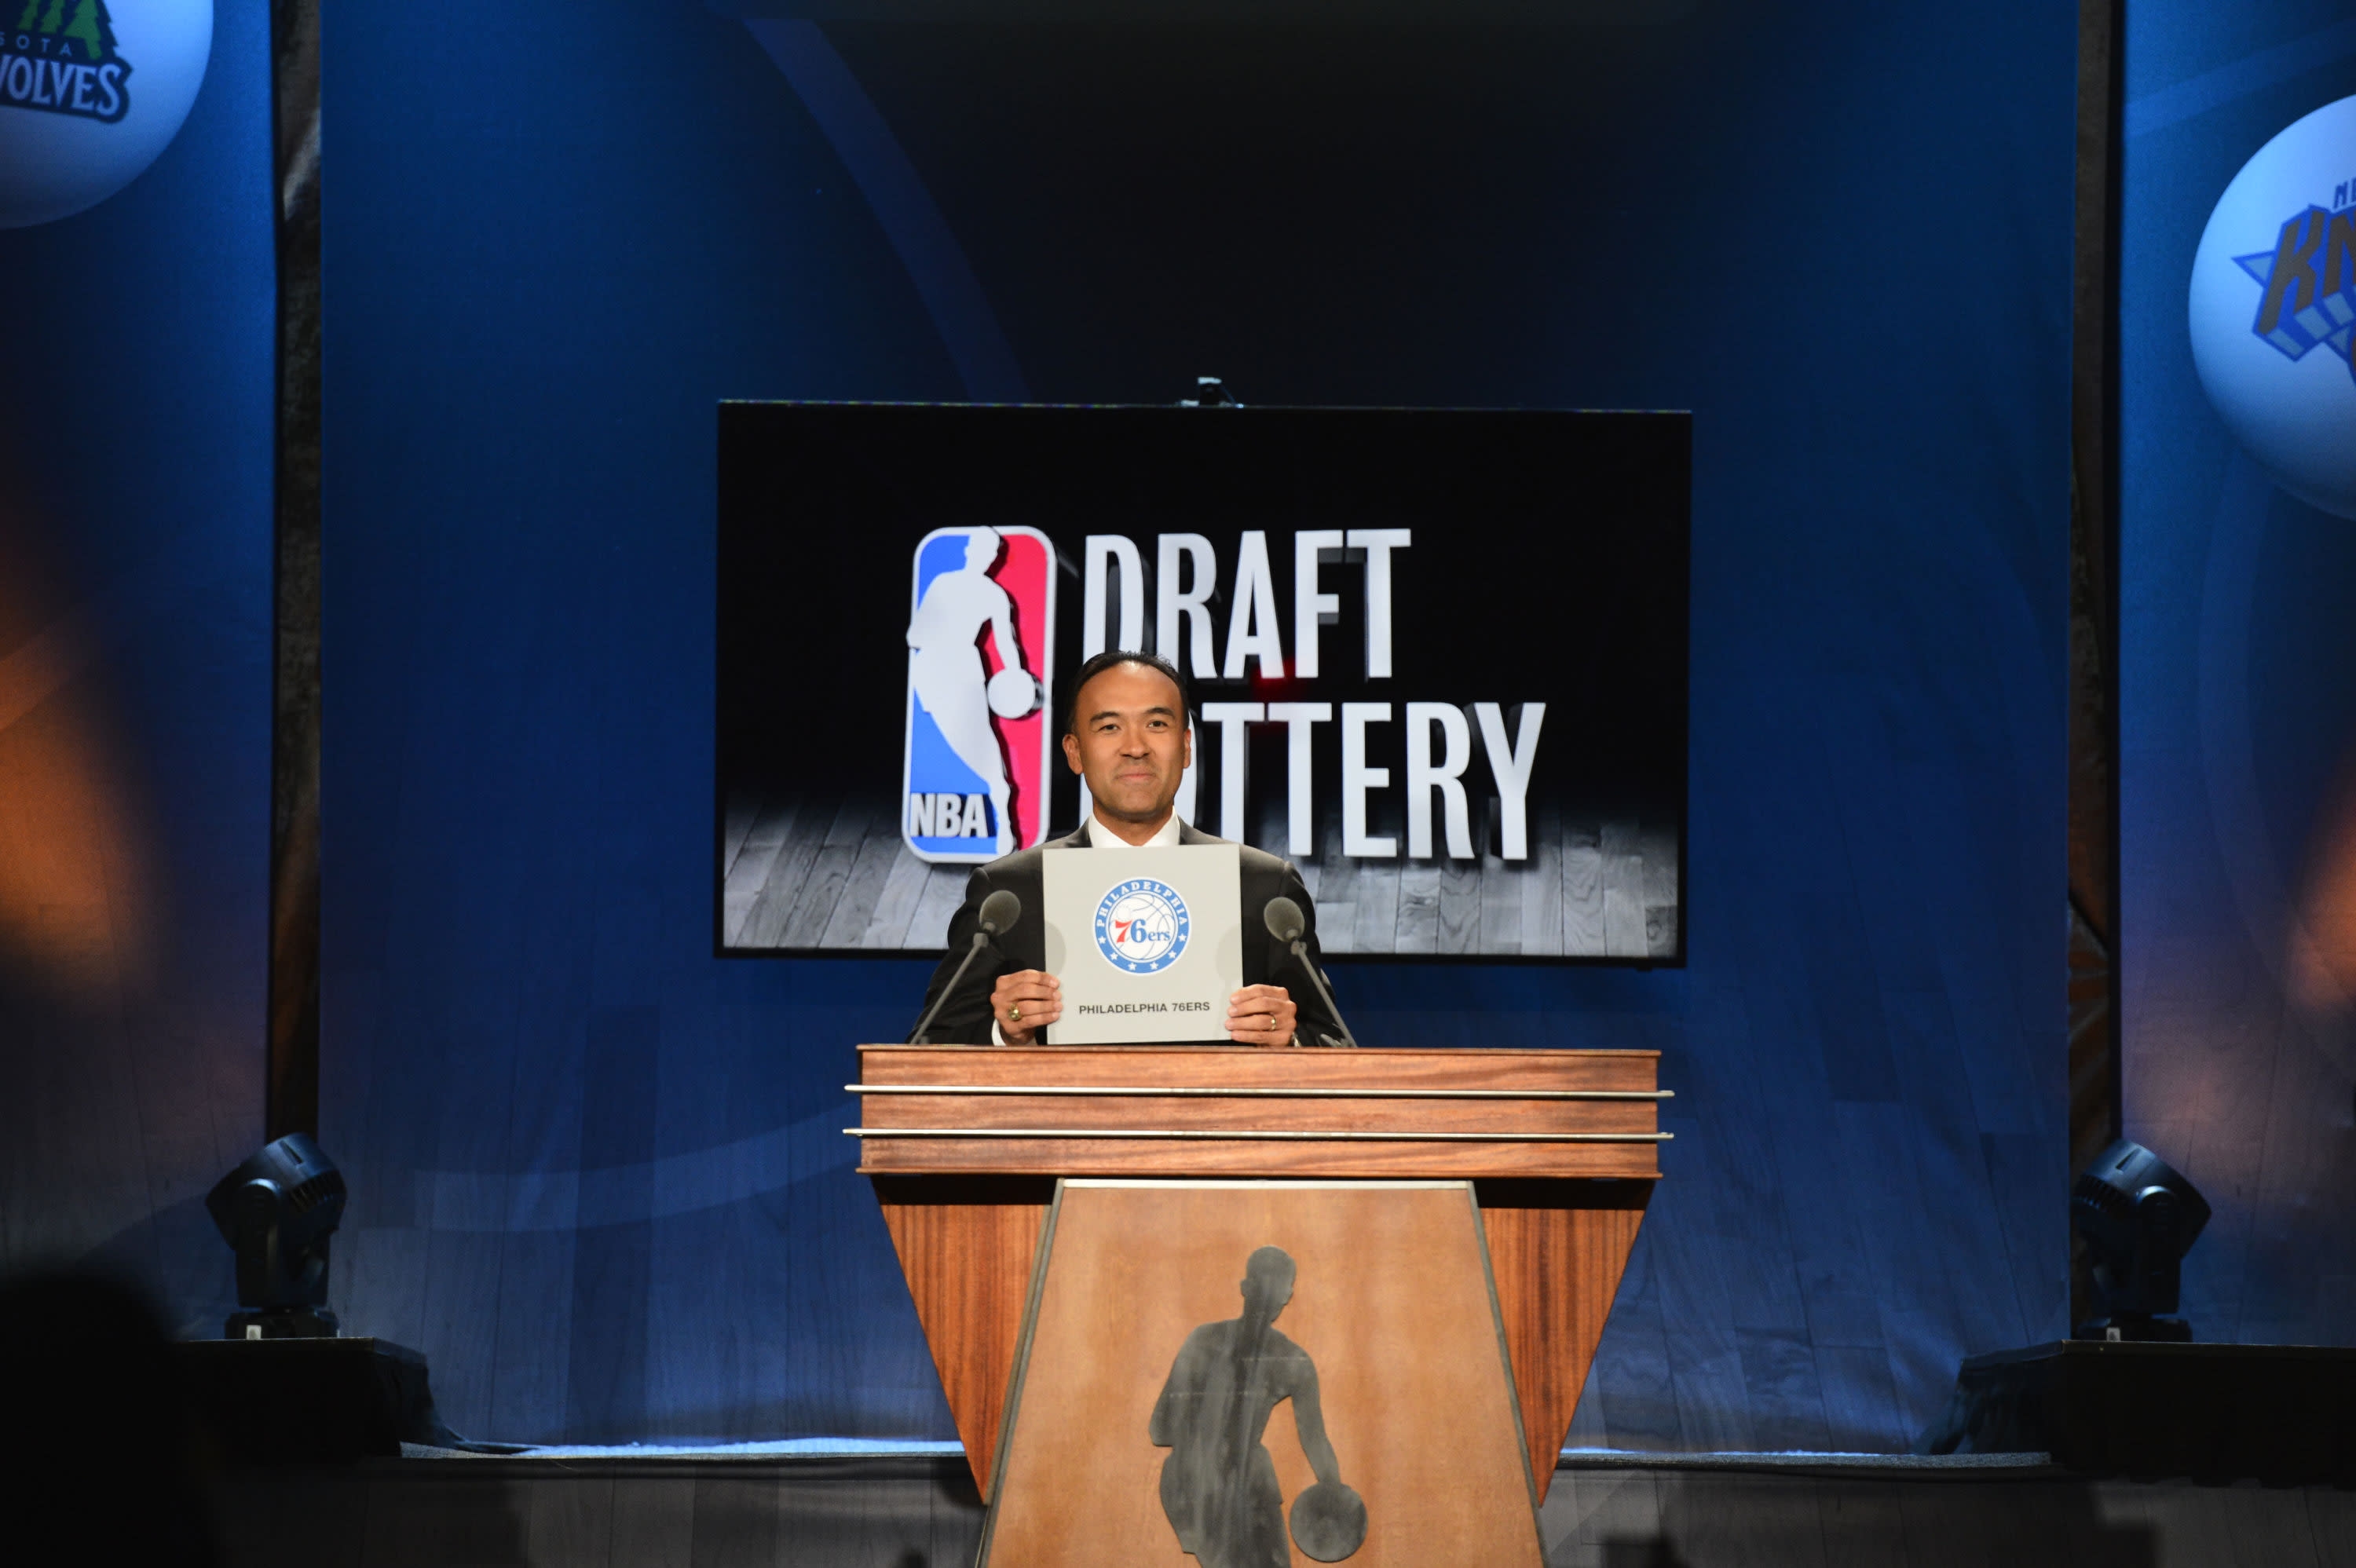 RADIO: What's next for the 76ers rebuild?